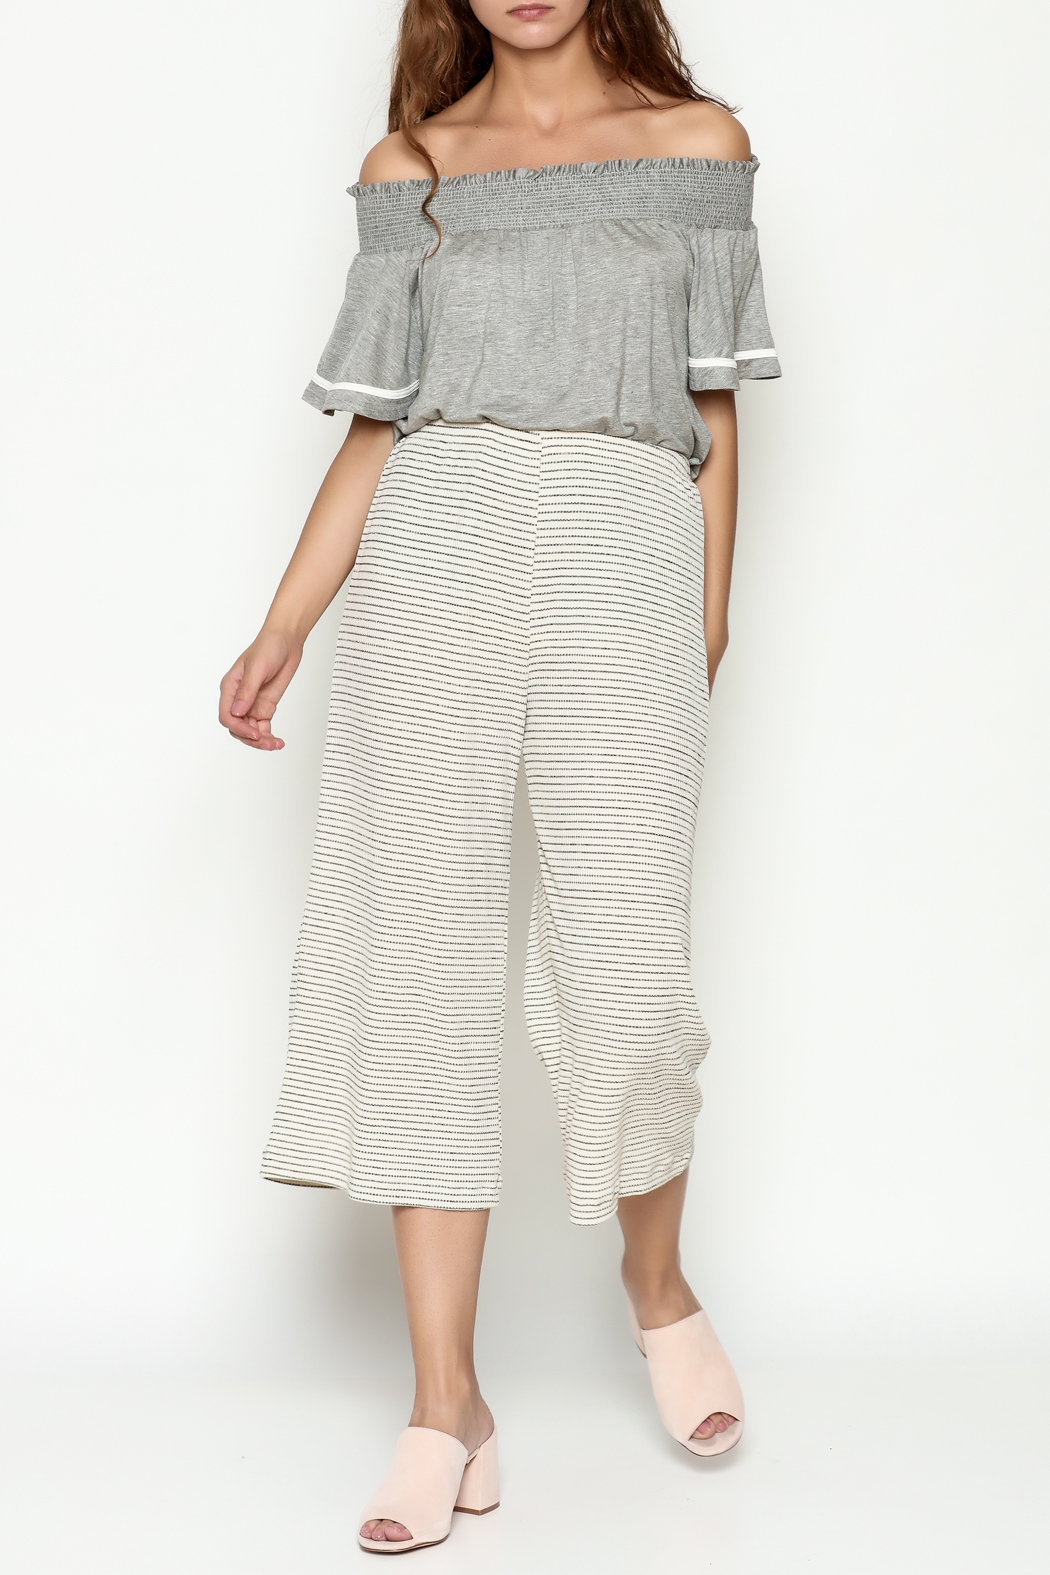 Everly Cropped Knit Pants - Side Cropped Image